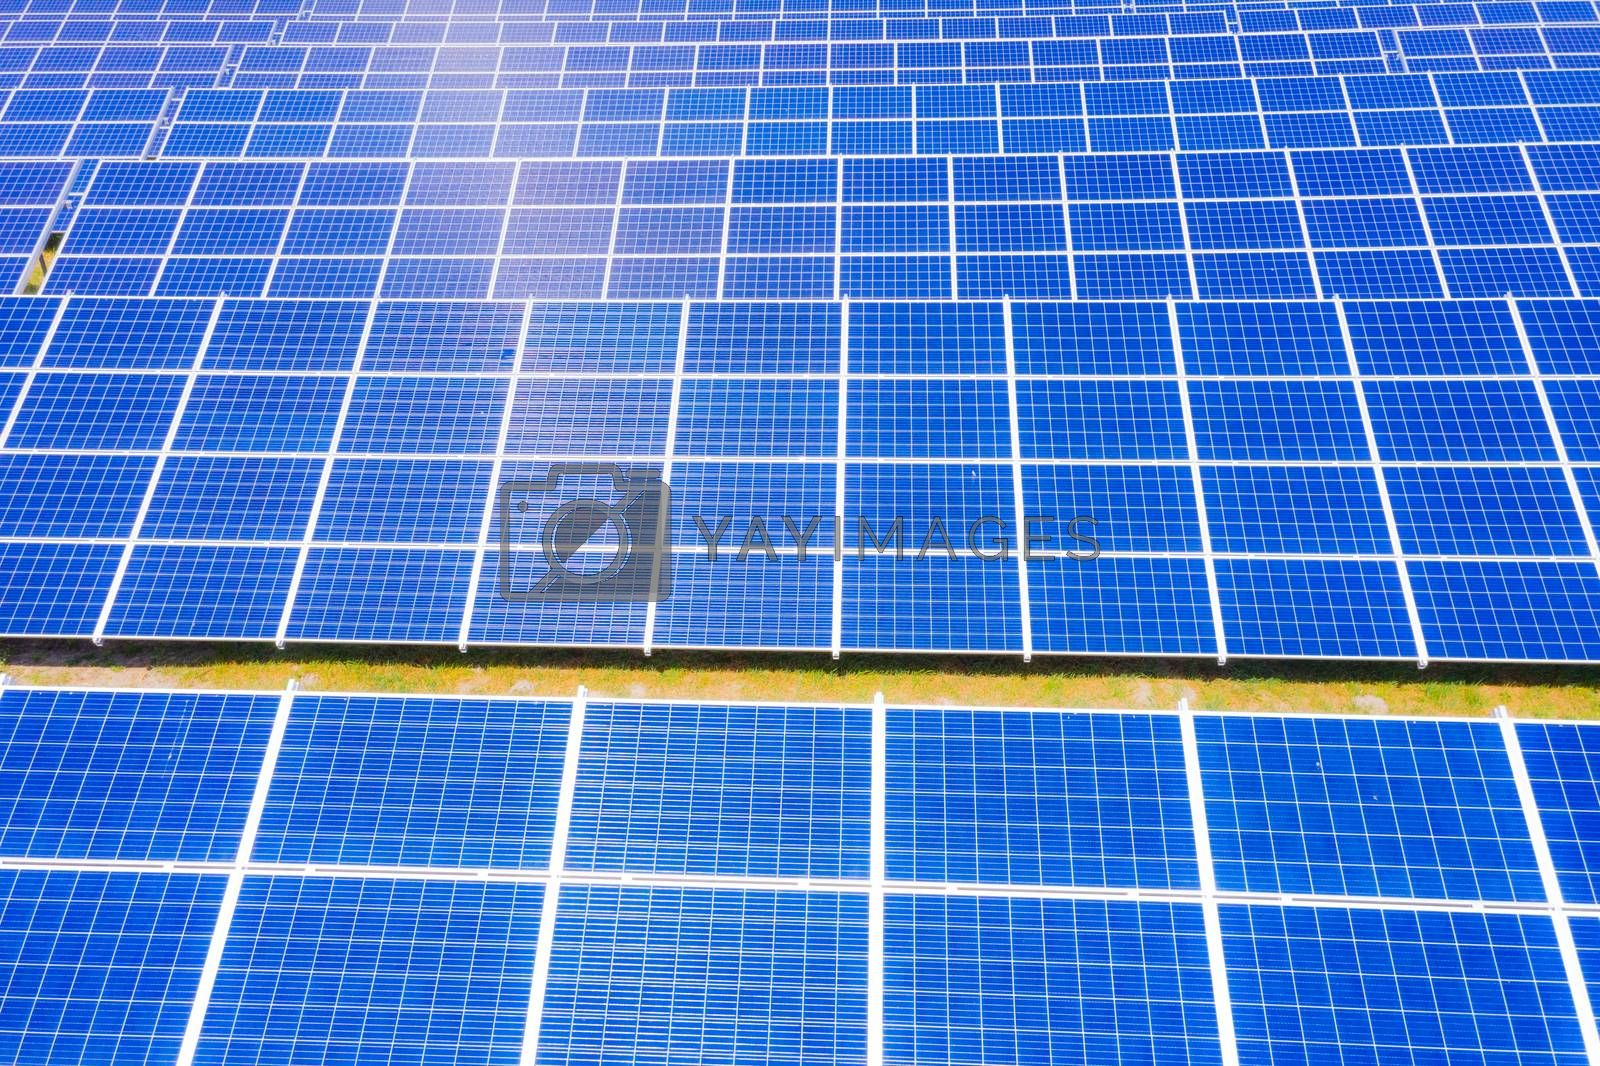 solar panels with the sunny sky. Blue solar panels. background of photovoltaic modules for renewable energy. Aerial view of Solar panels Photovoltaic systems industrial landscape